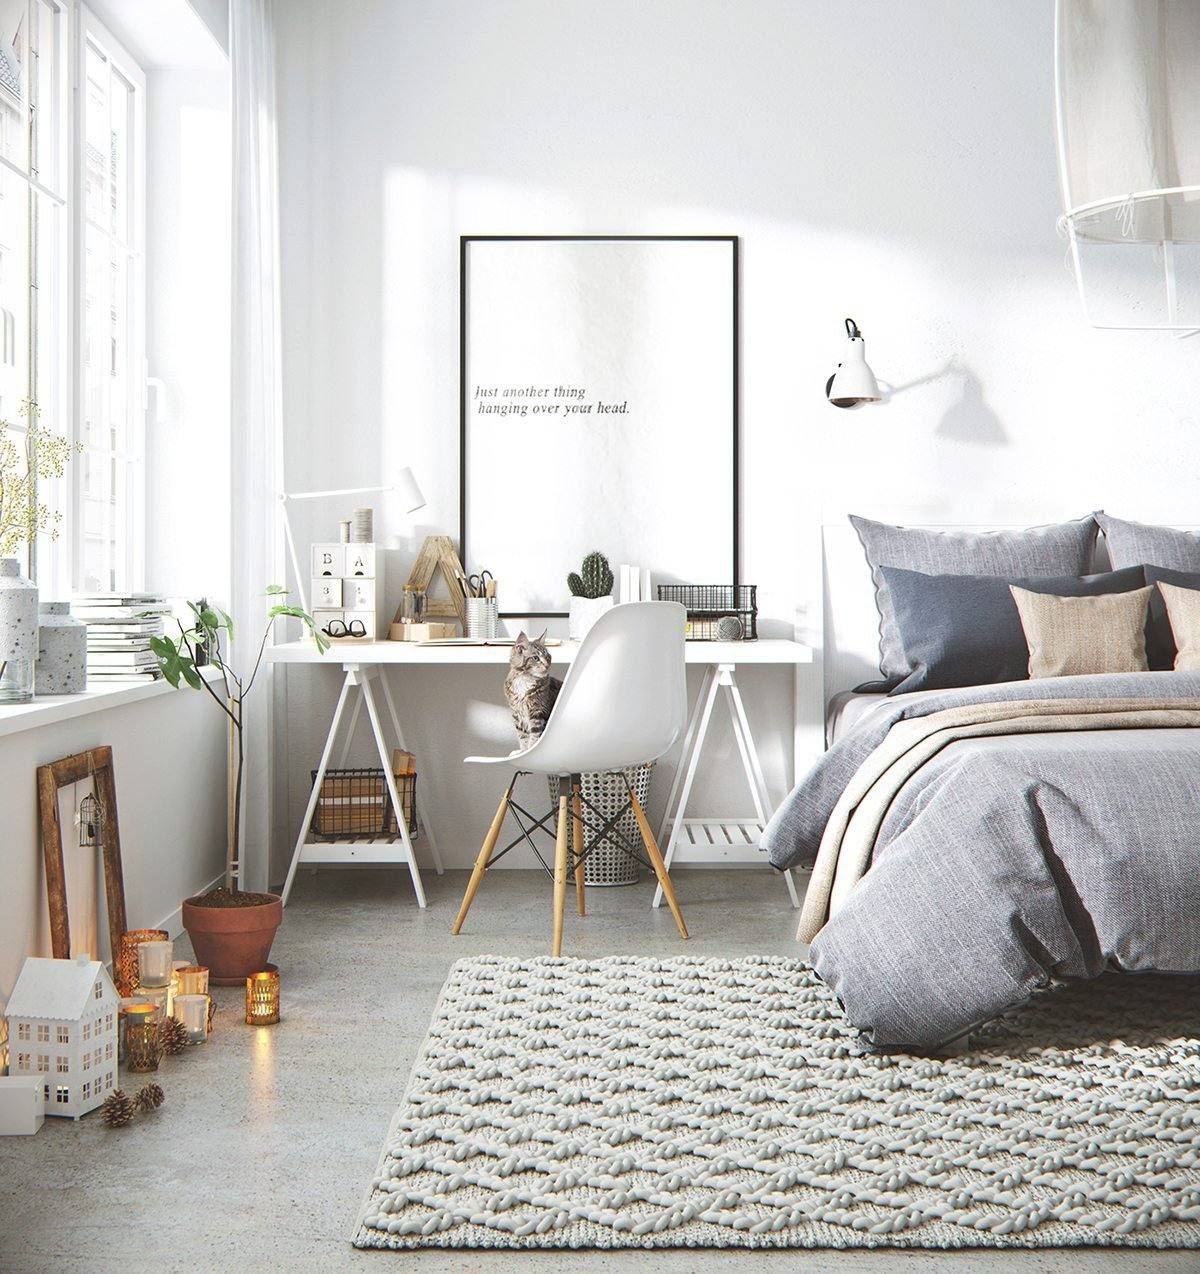 Best Bright And Cheerful 5 Beautiful Scandinavian Inspired With Pictures